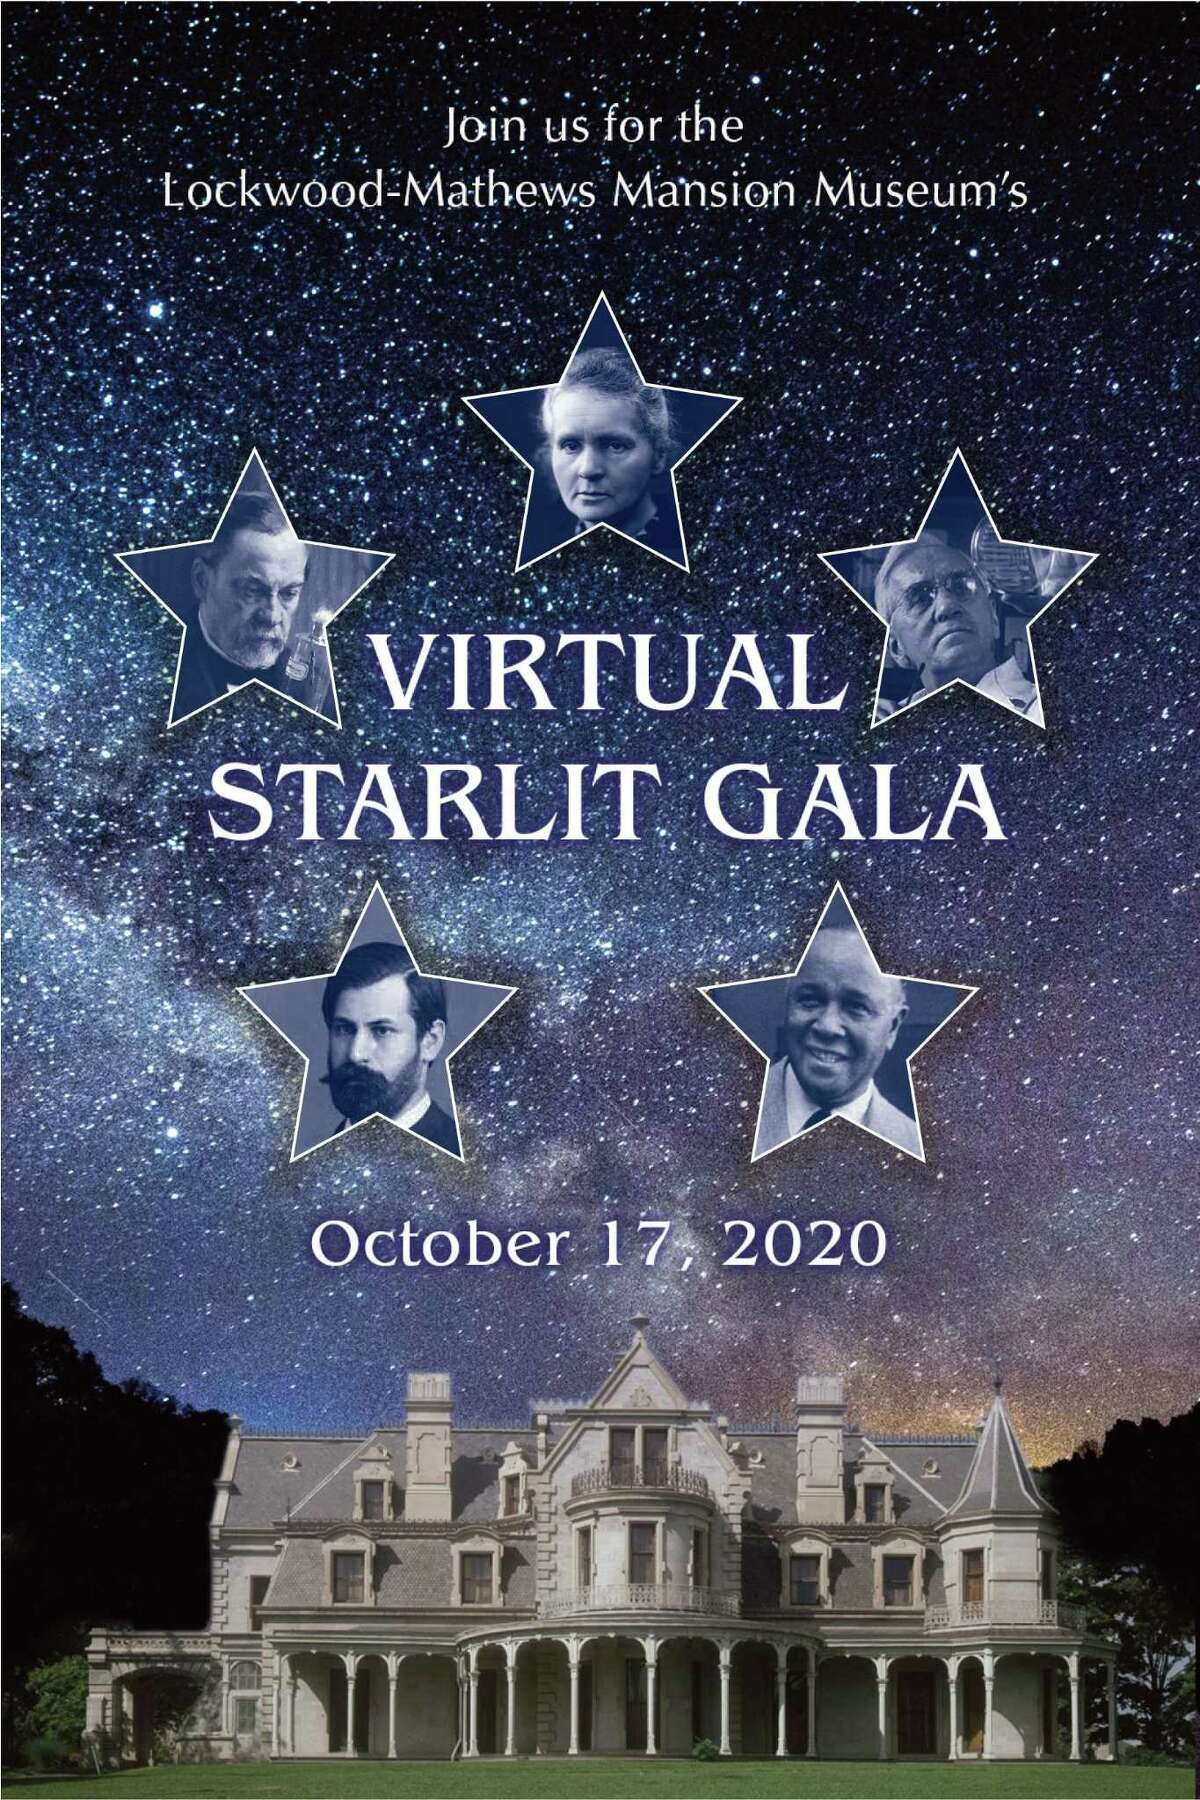 The Lockwood-Mathews Mansion Museum's Oct. 17 virtual Starlit Gala will honor David Westmoreland, a longstanding supporter of LMMM and its preservation. Tickets are $50 to $100.